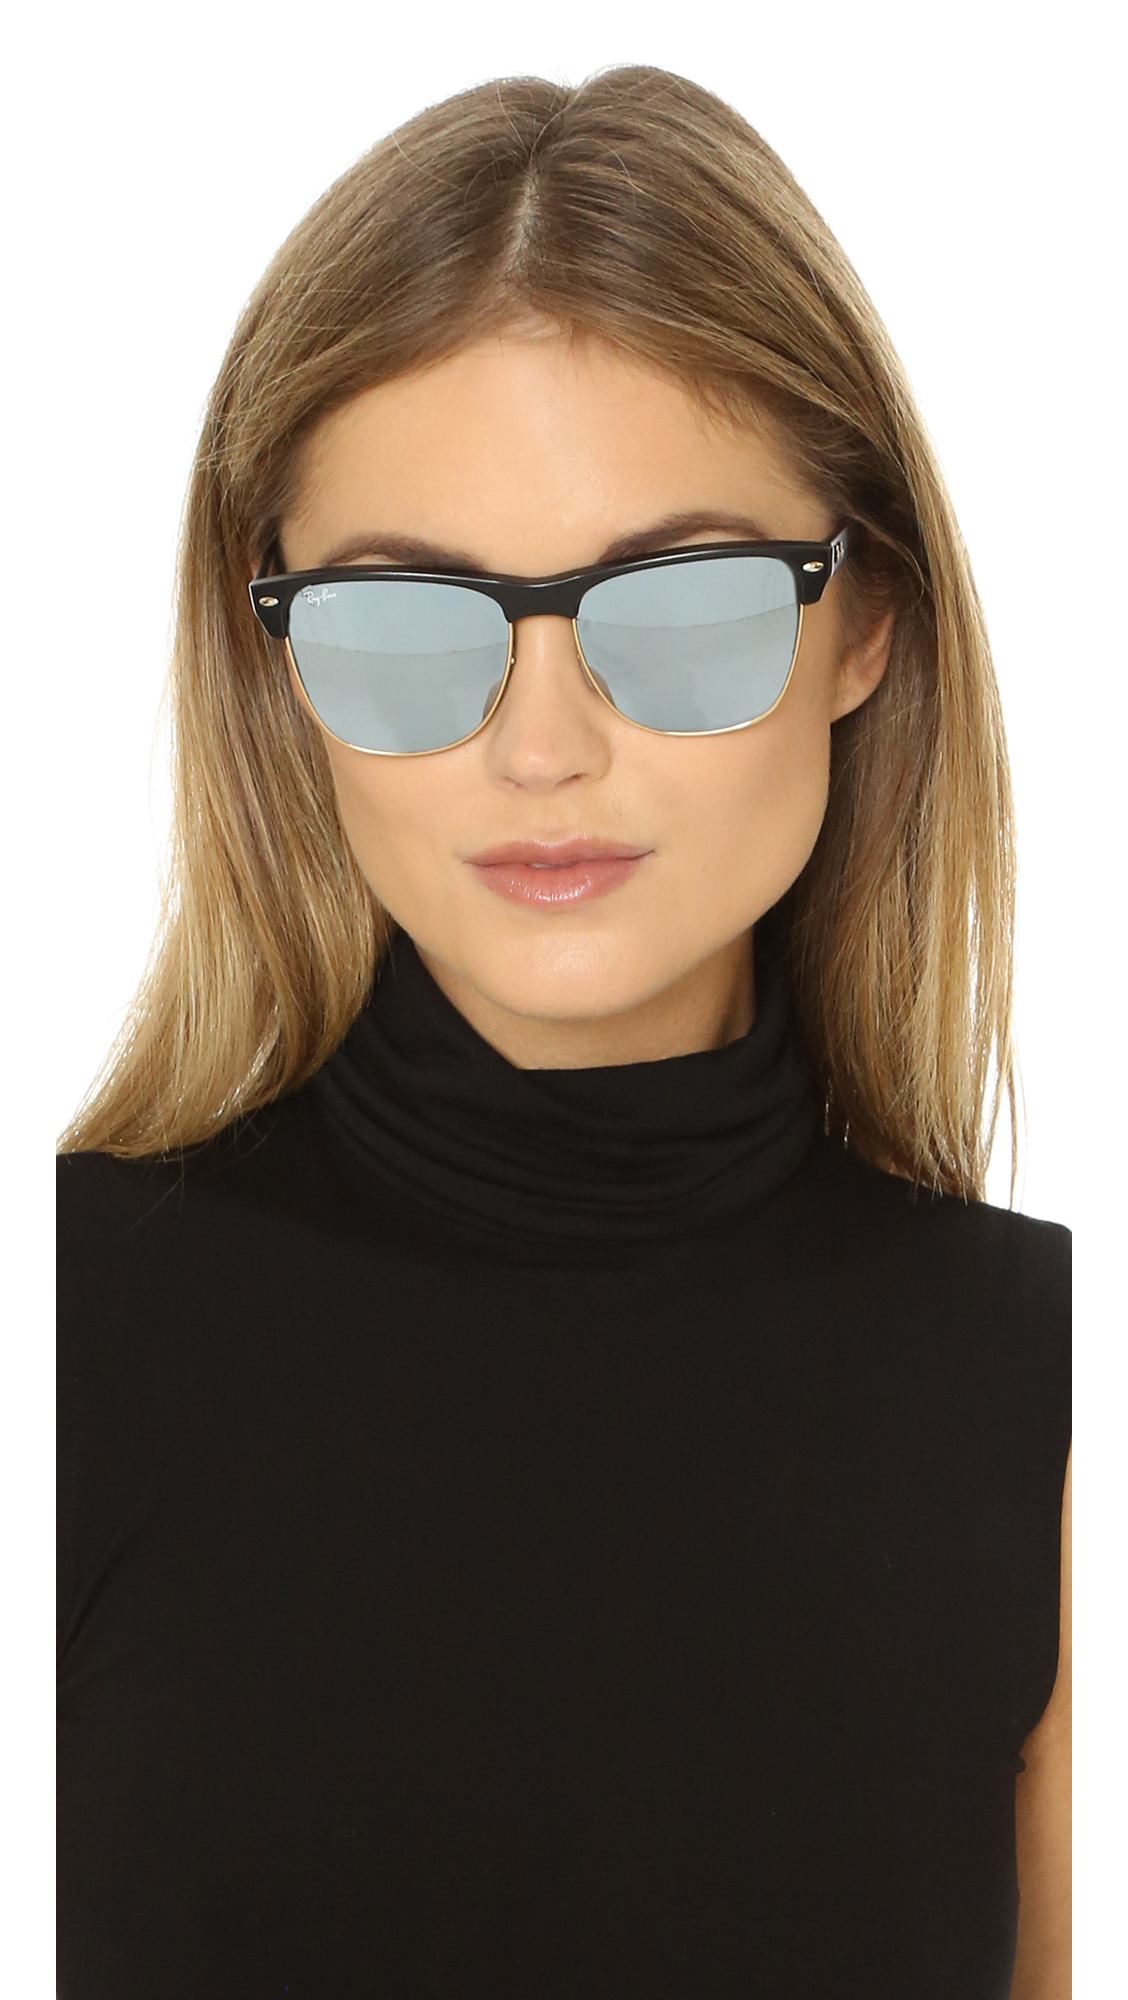 ray ban mirrored clubmaster sunglasses  gallery. previously sold at: shopbop · women's clubmaster sunglasses women's ray ban clubmaster women's mirrored sunglasses